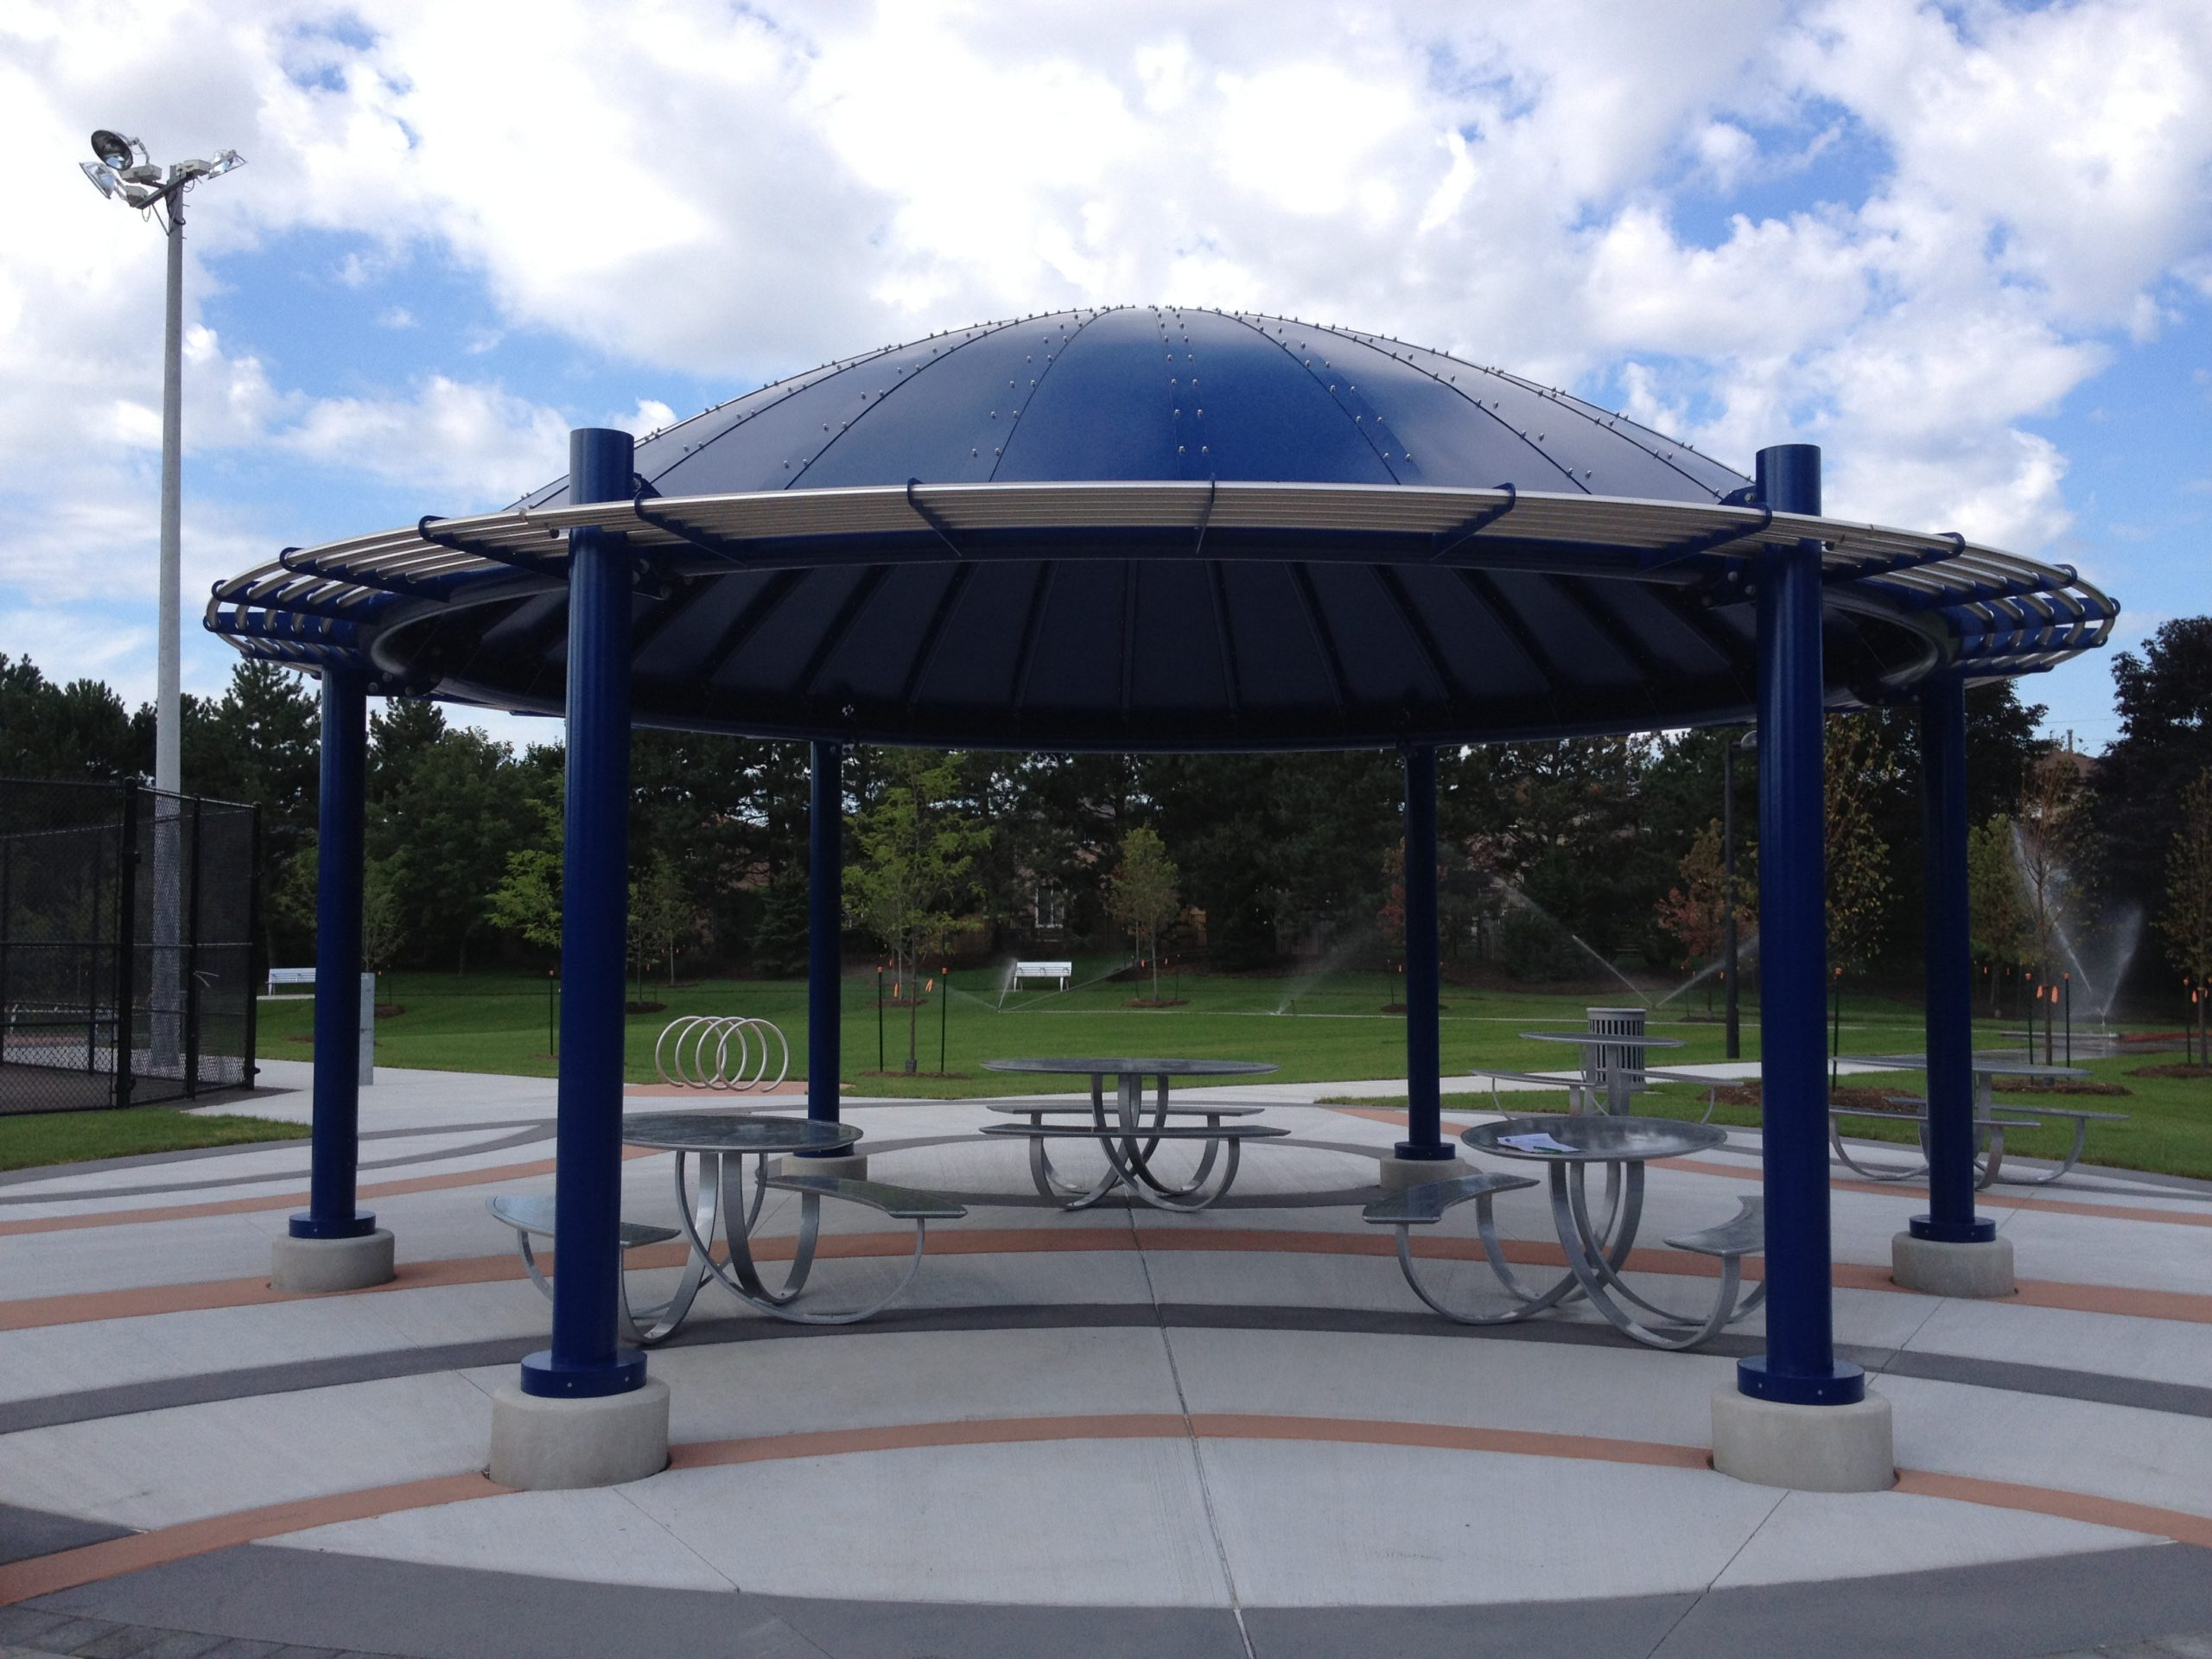 Shade structure.